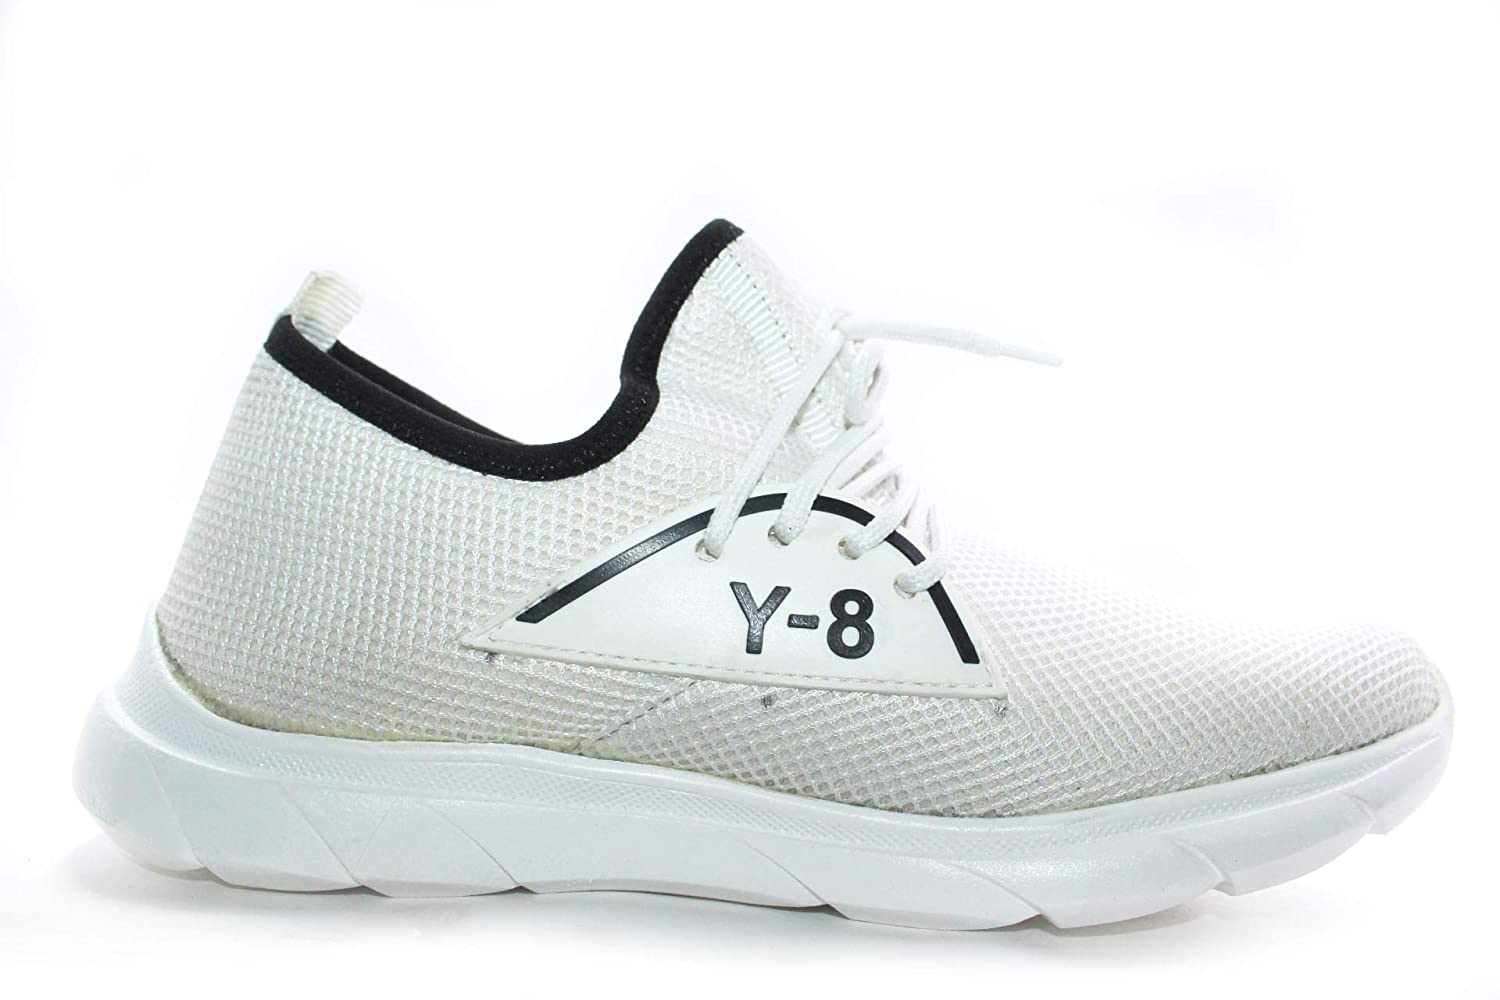 Buy Sports Shoes for Men Y8 (9) White